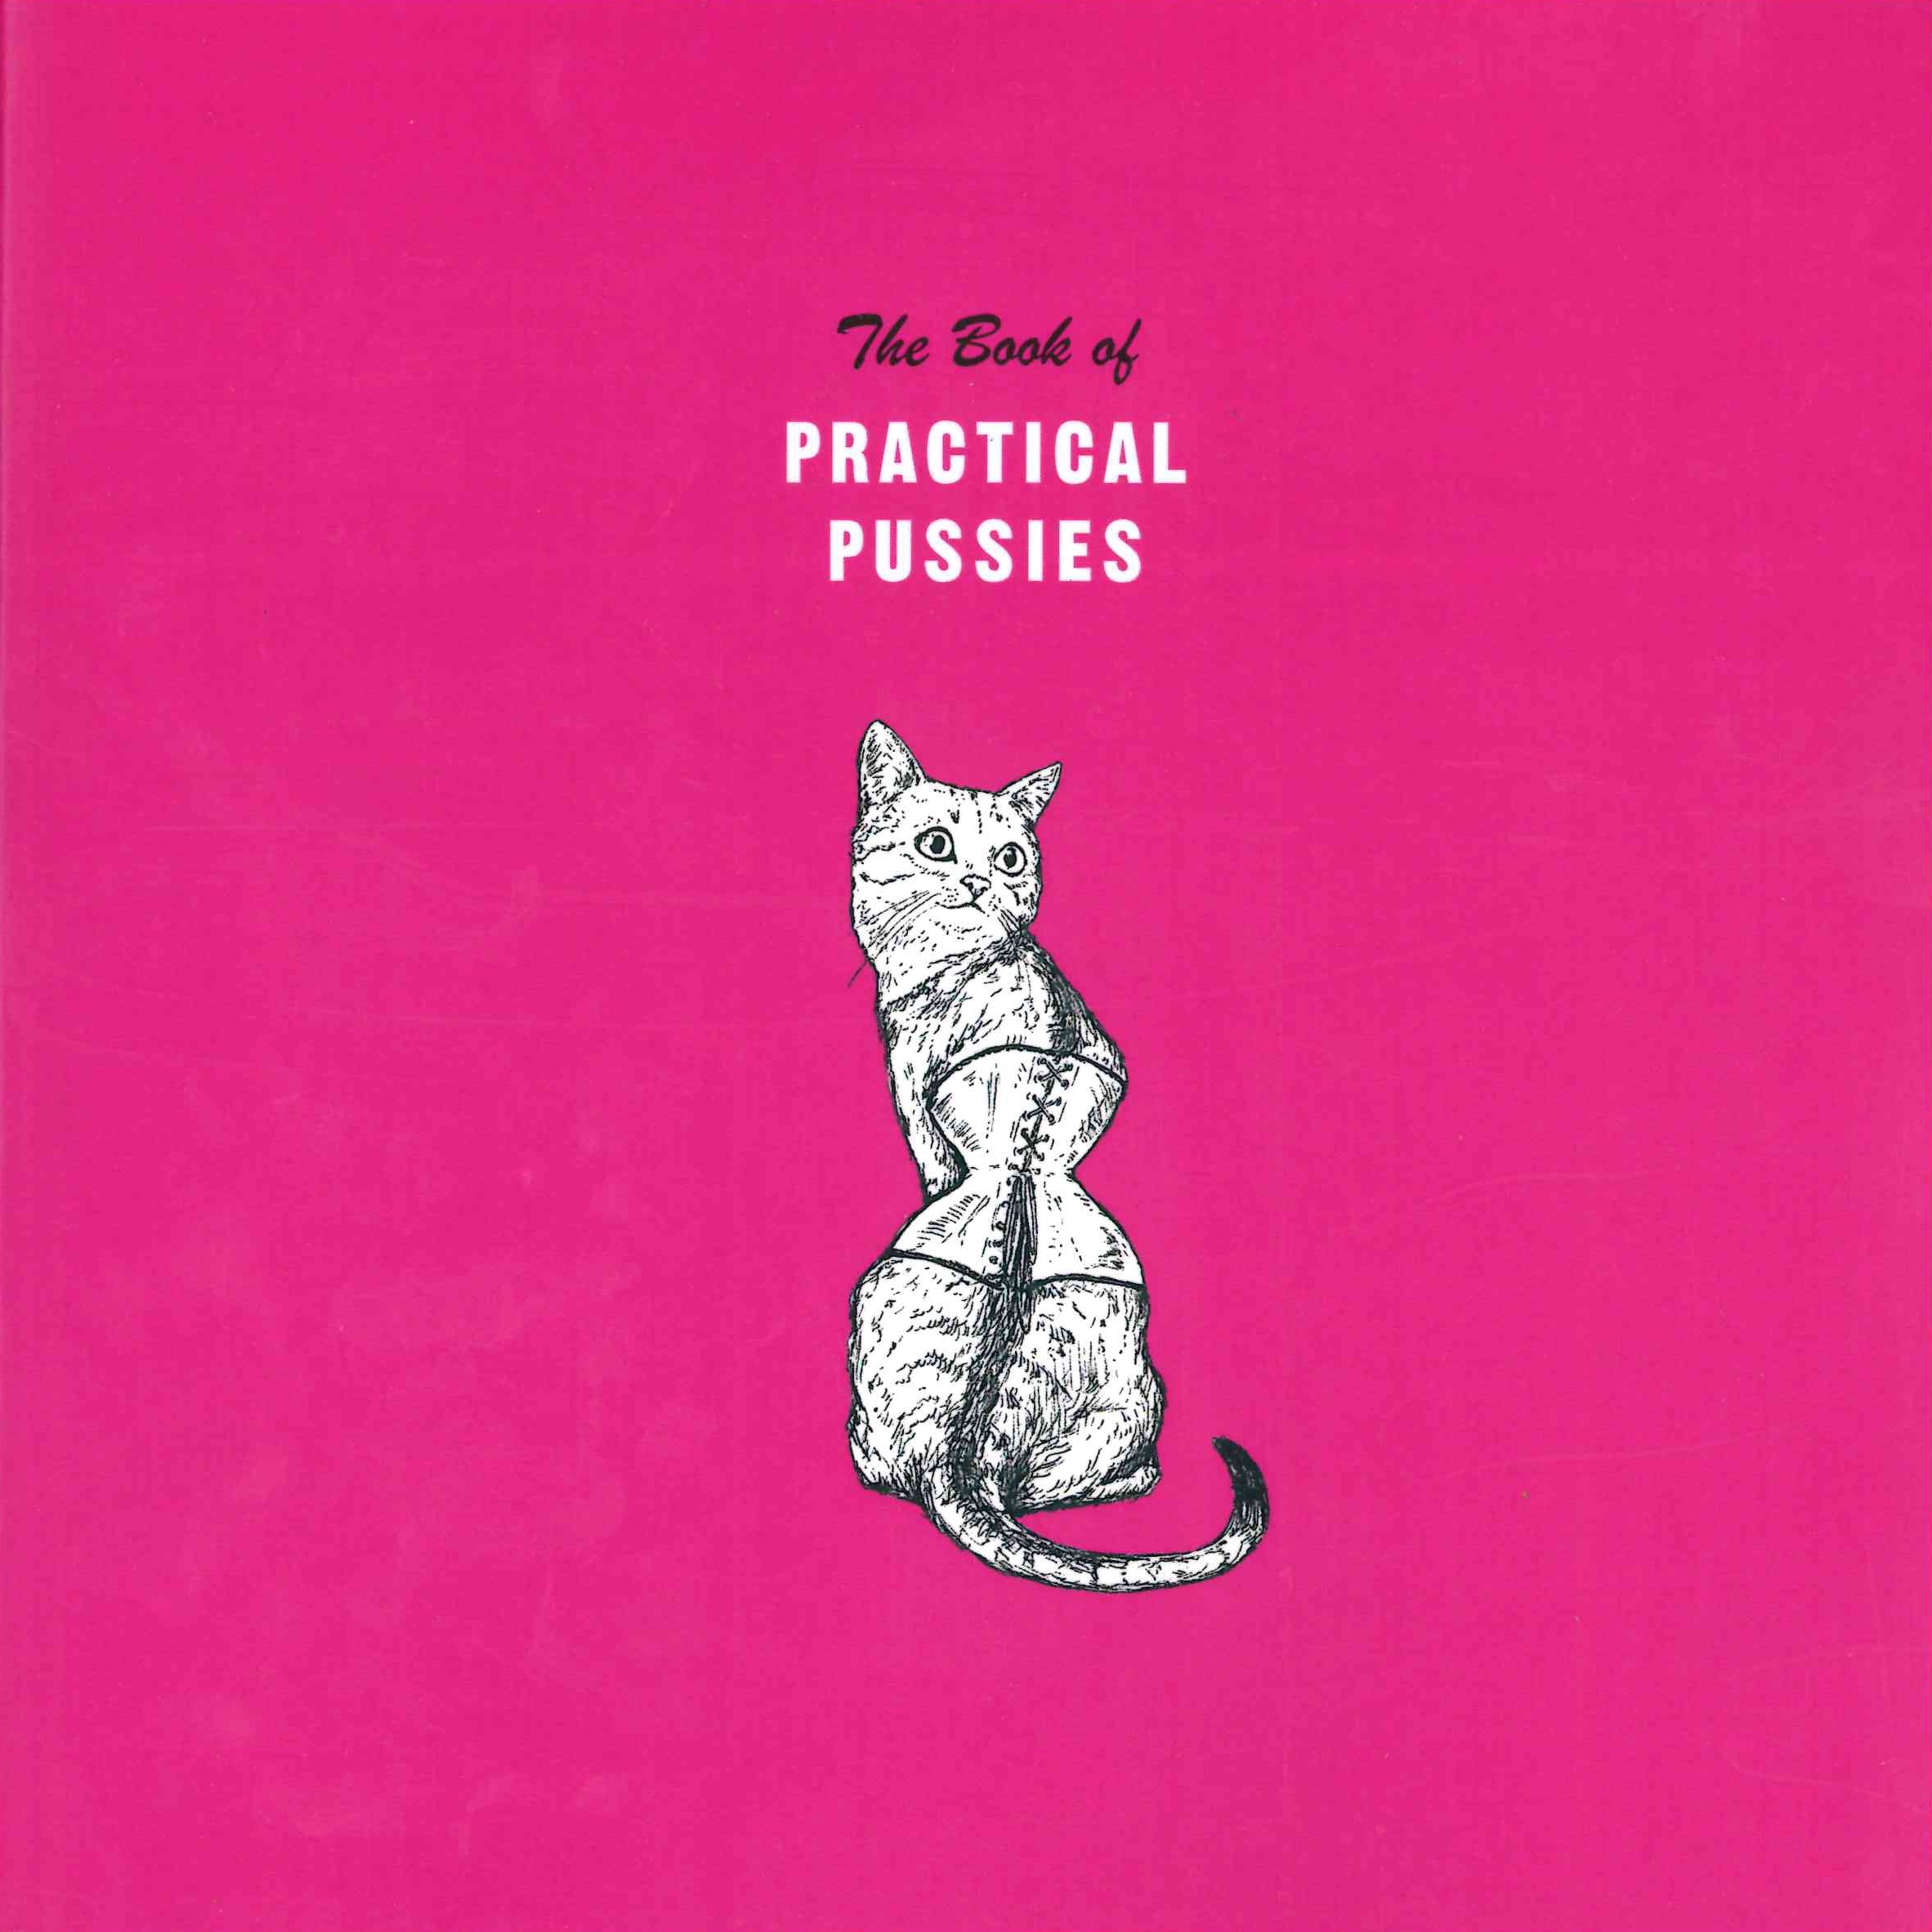 The Book of Practical Pussies | Michelle Rollman | Krupskaya